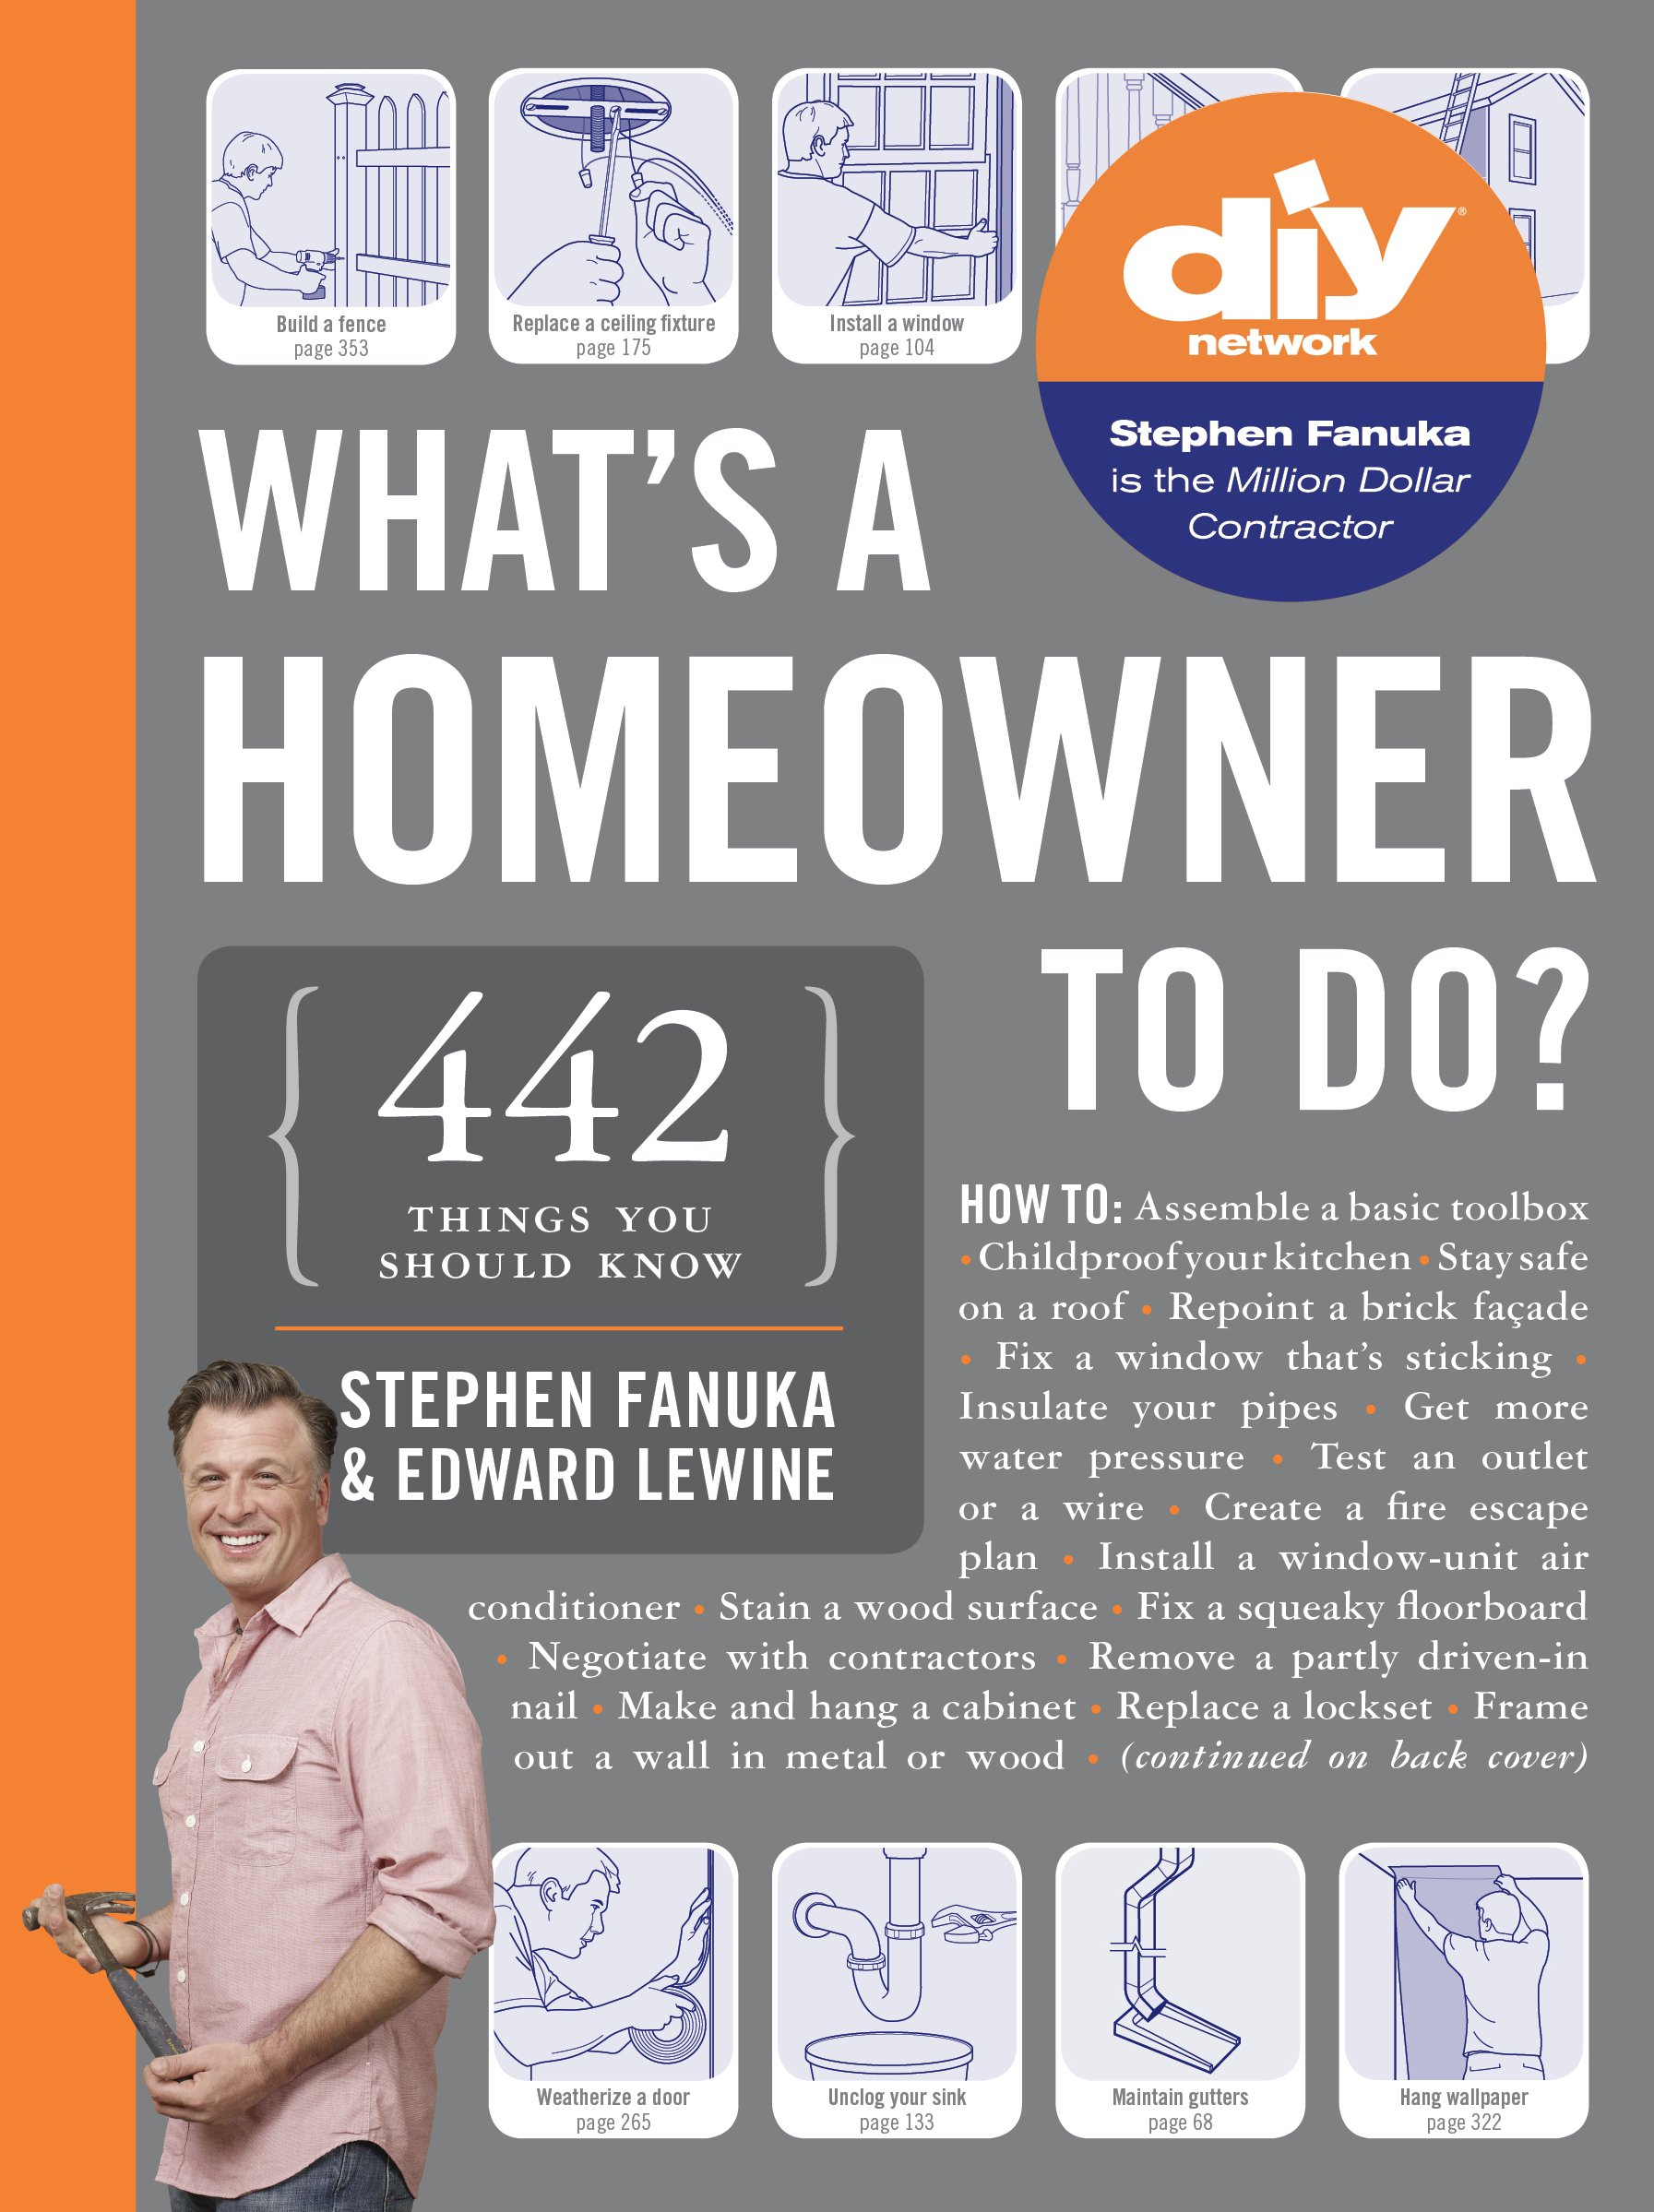 What's a Homeowner to Do?